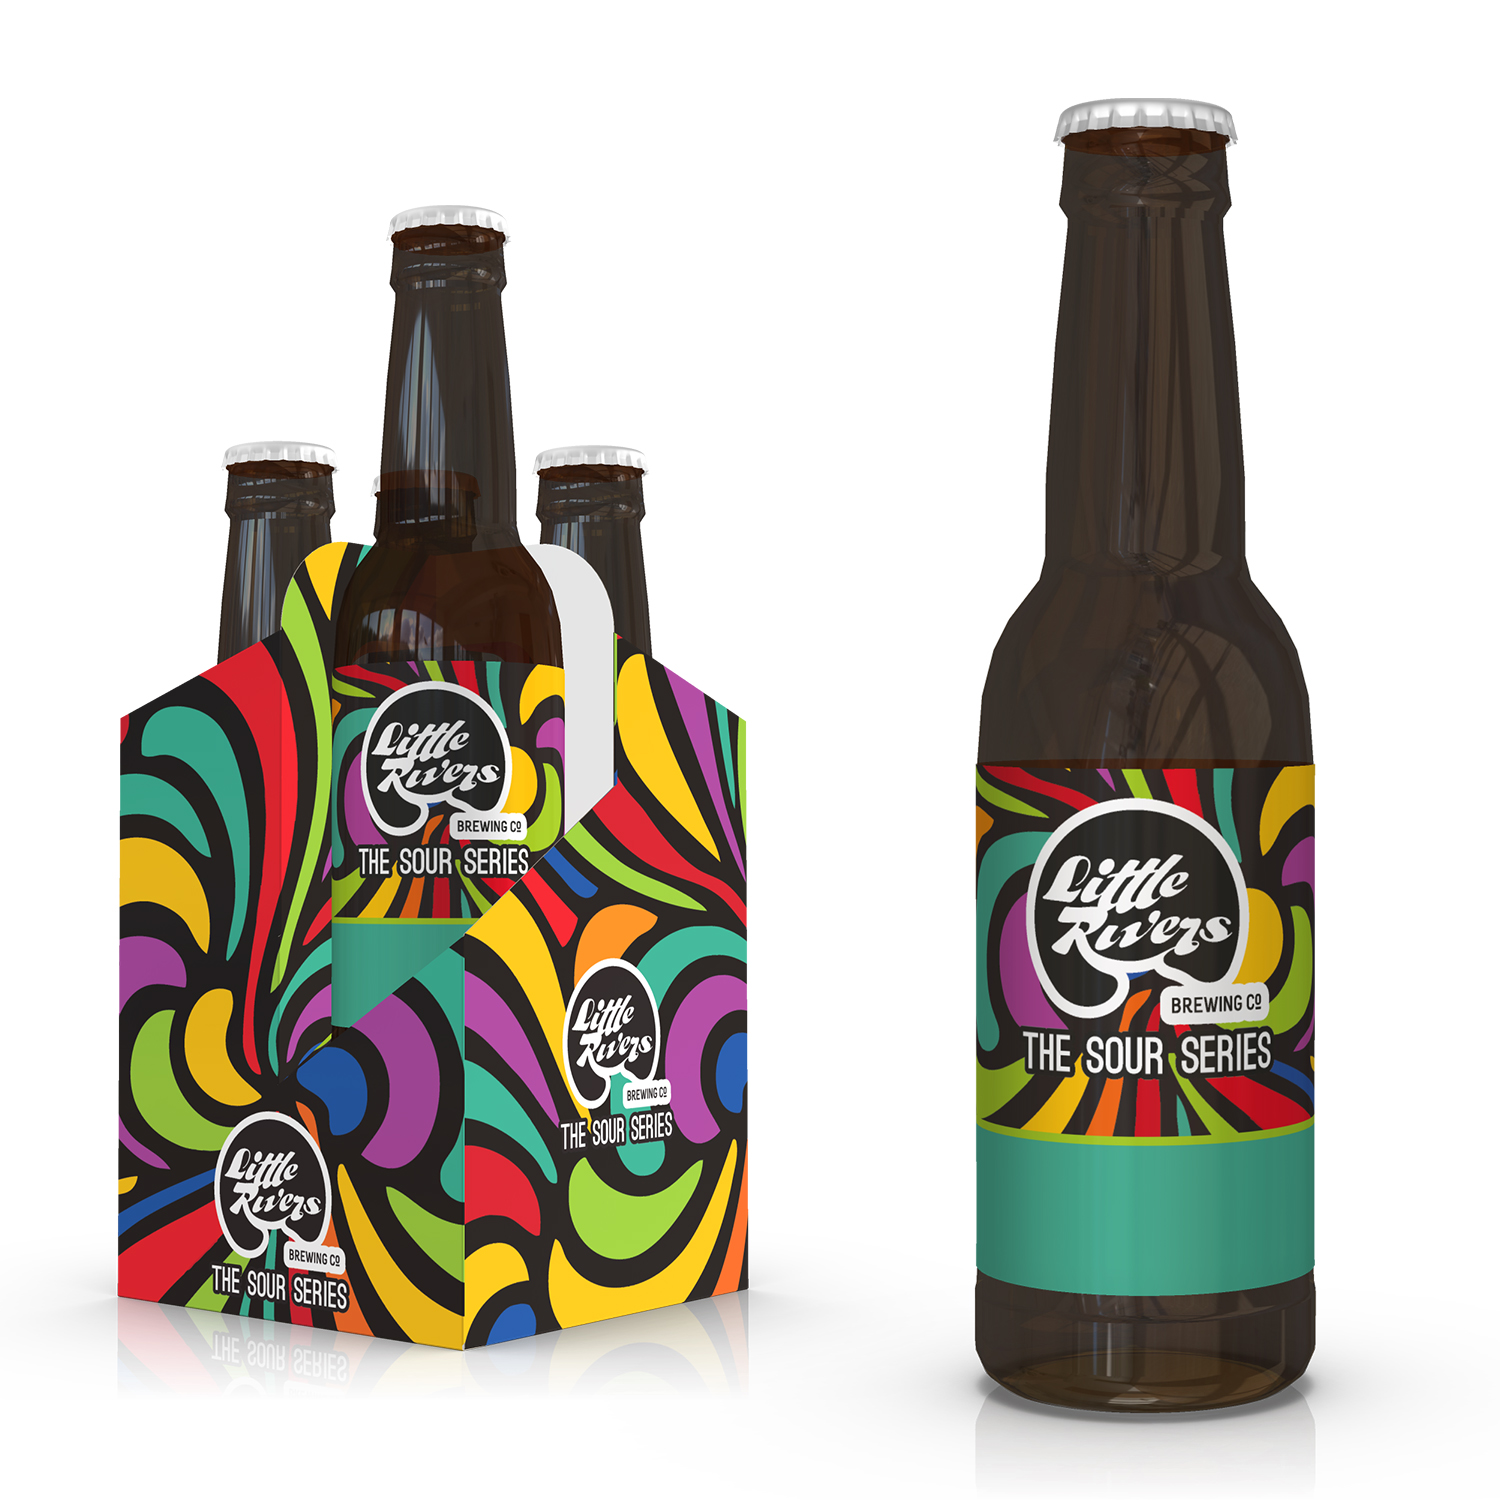 Playful Modern Craft Brewery Packaging Design For A Company By